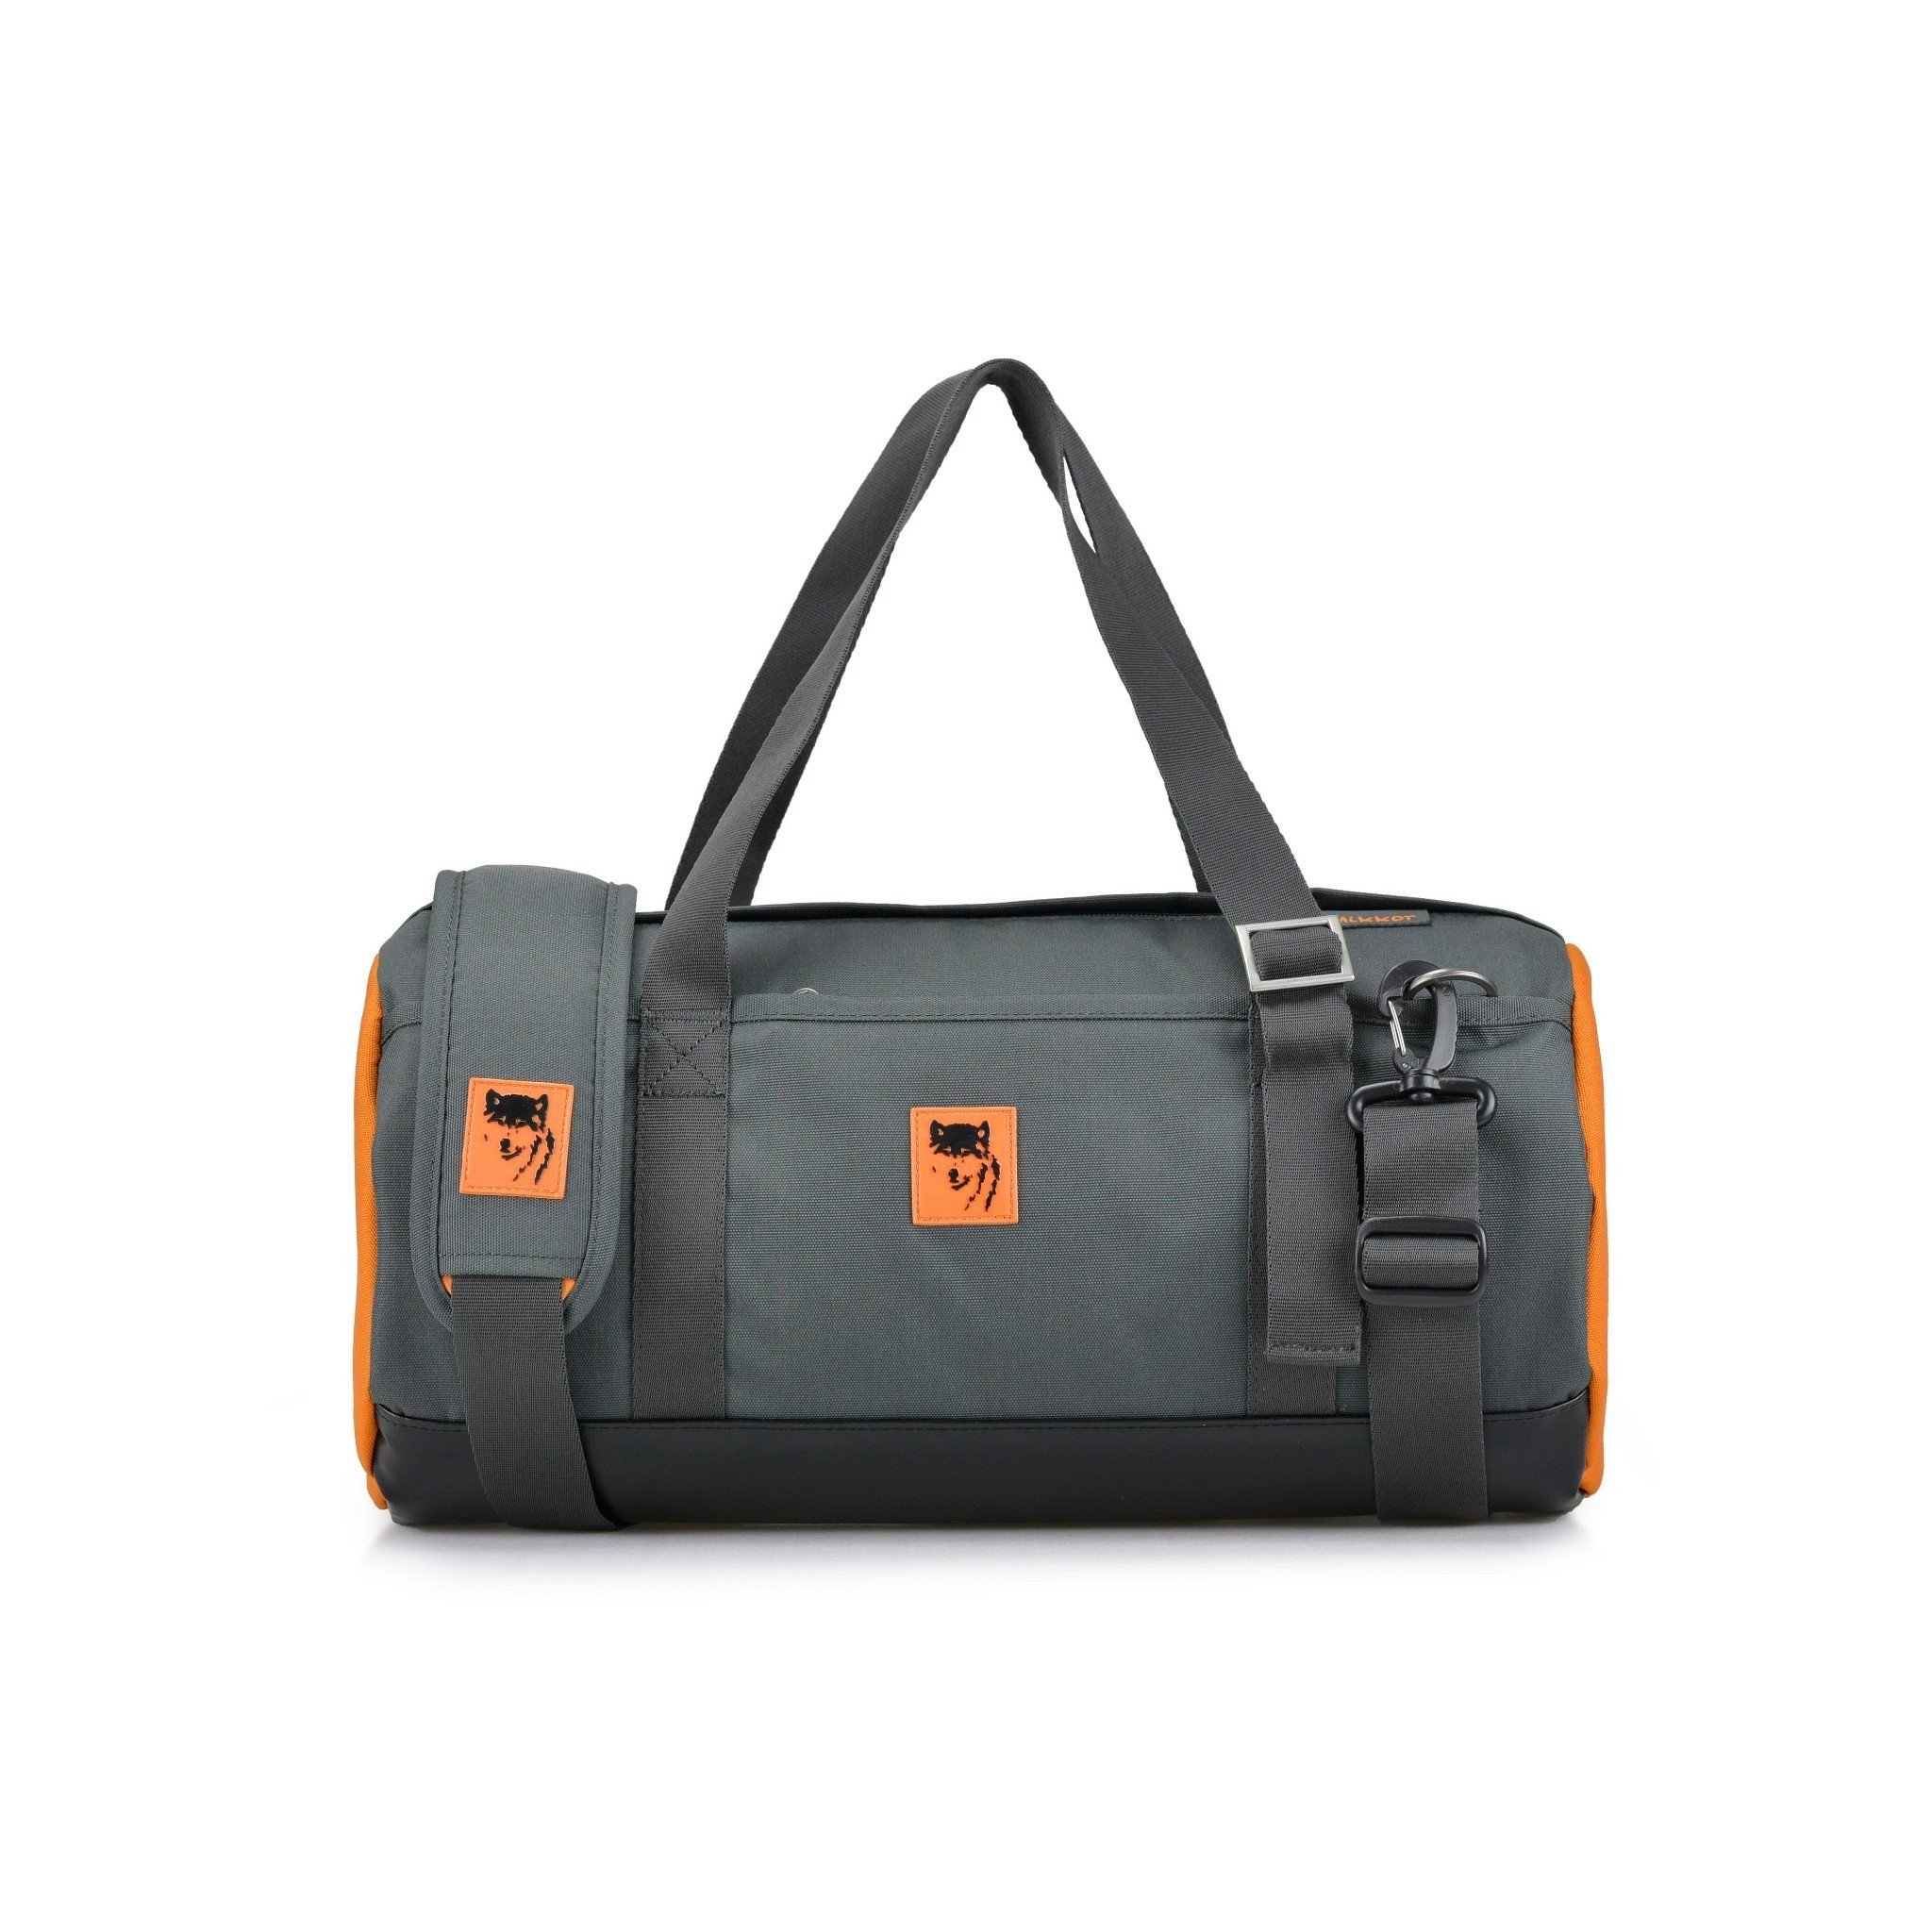 The Sporty Gymer Charcoal/Orange